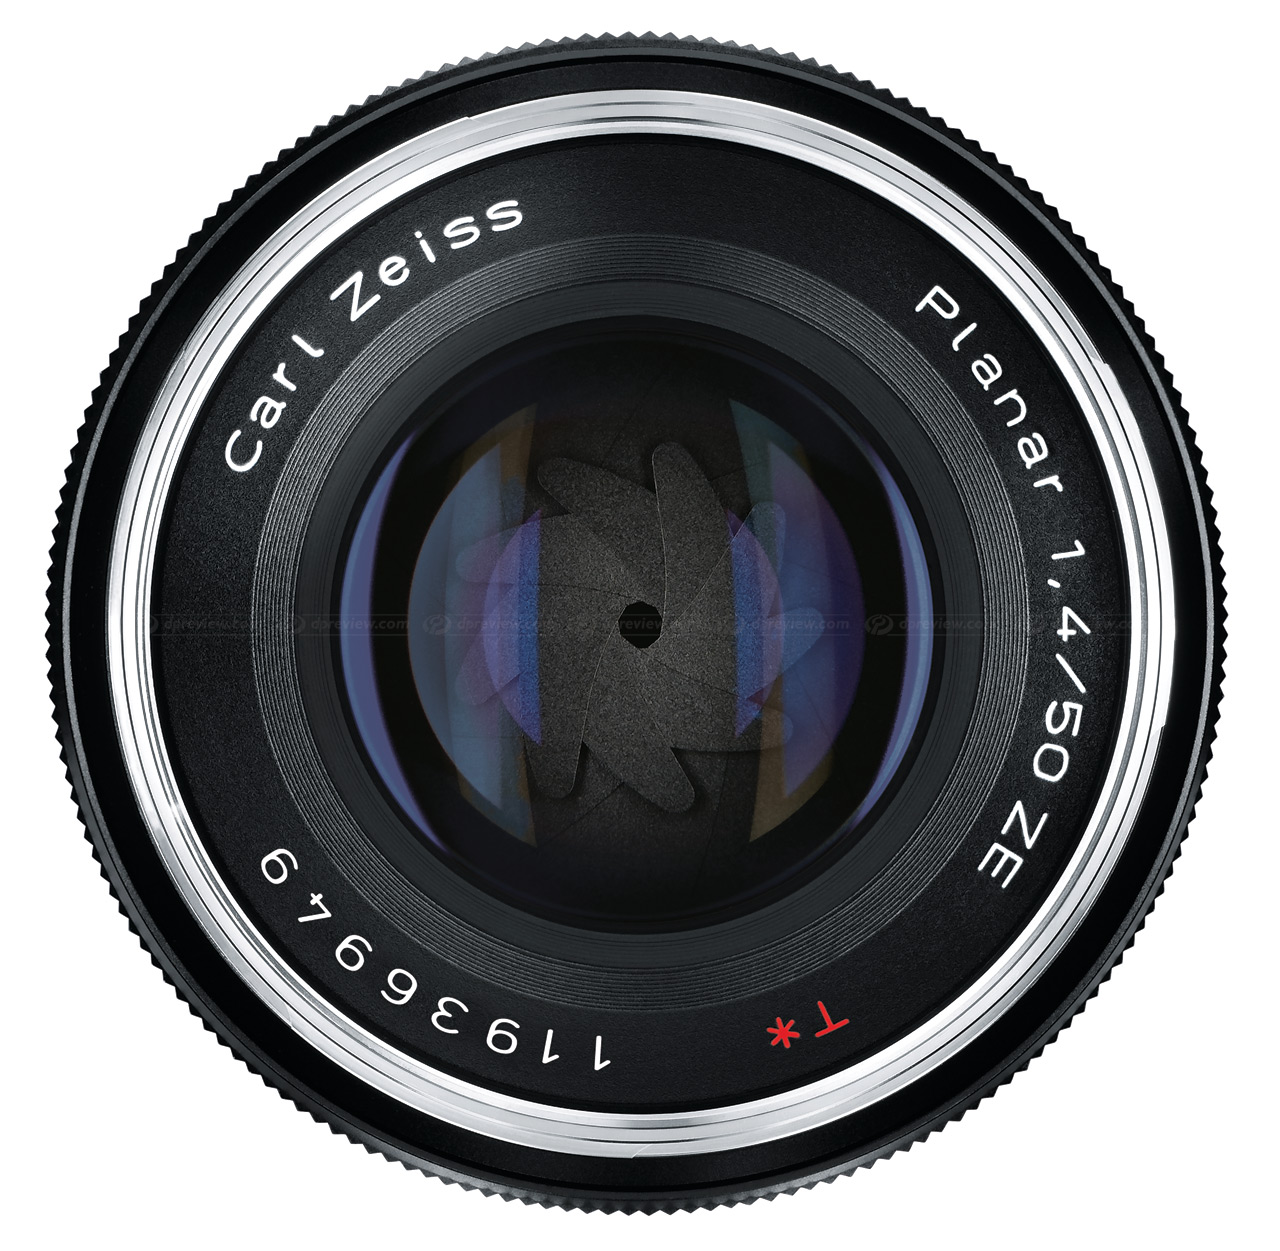 Carl Zeiss lenses for Canon SLRs: Digital Photography Review